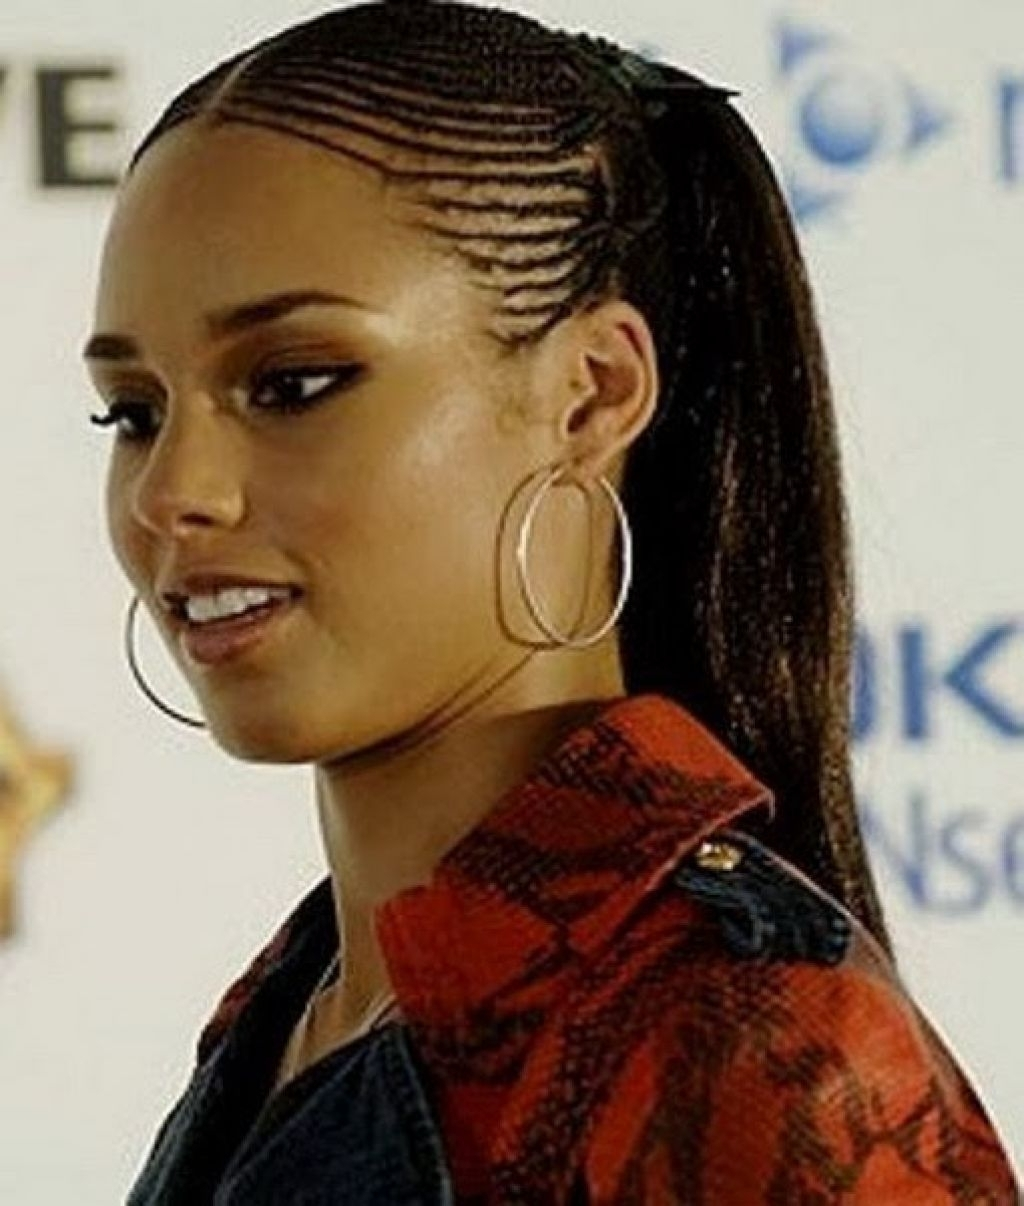 Alicia Keys Braids Hairstyles Alicia Keys Braids Hair Style Picture Intended For Current Alicia Keys Braided Hairstyles (Gallery 5 of 15)